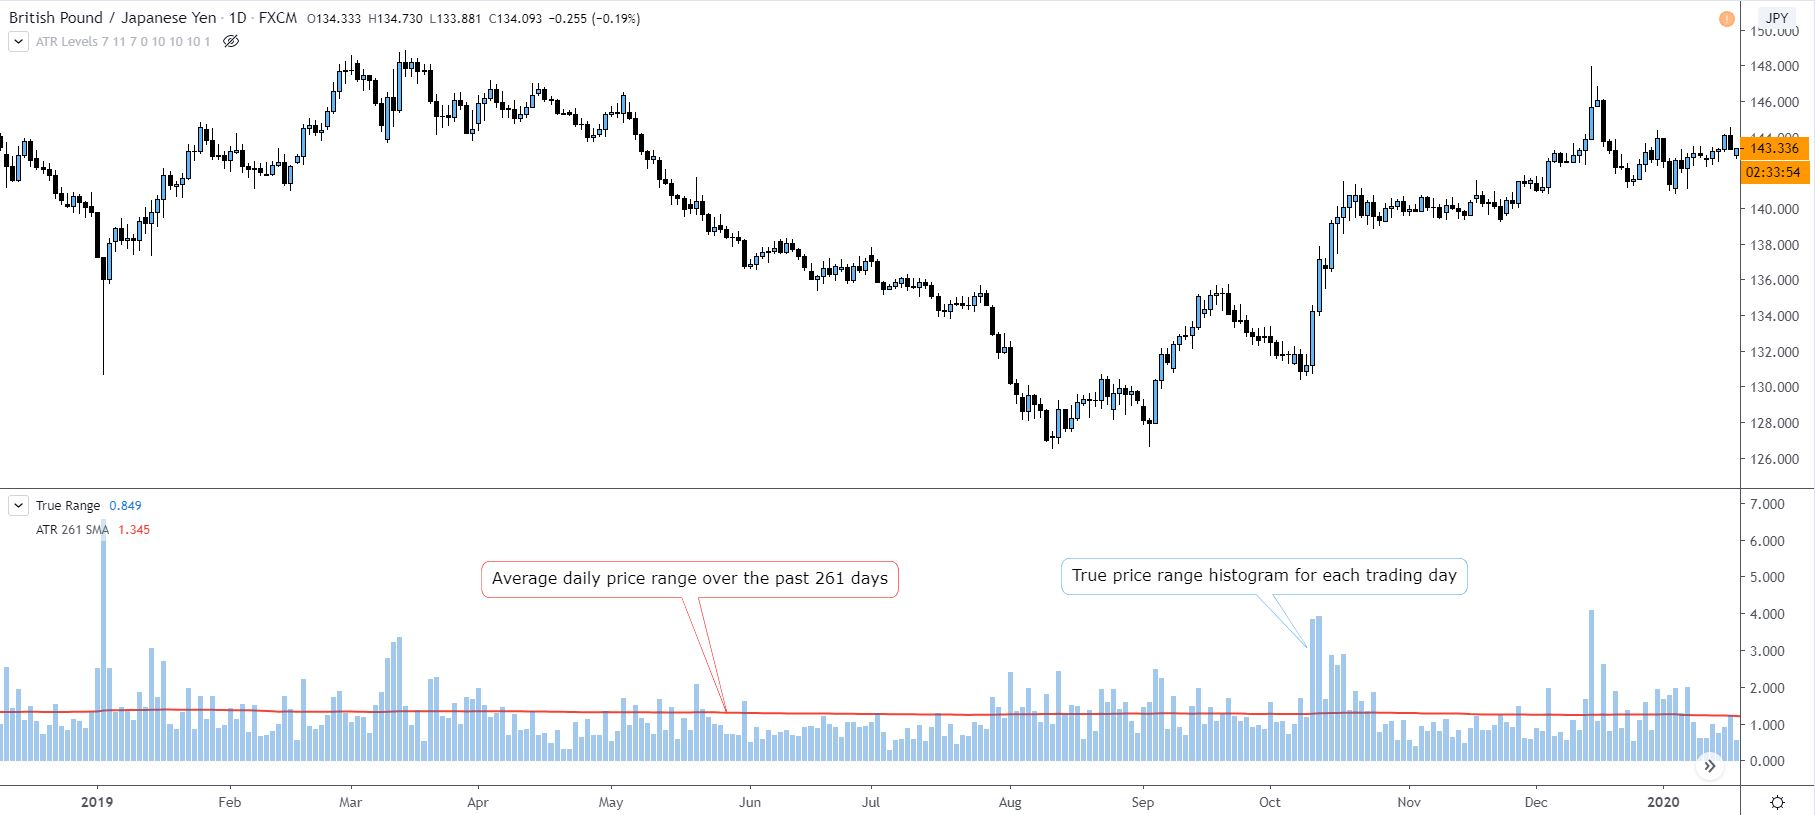 Daily average ranges for GBPJPY showing the potential for profitability